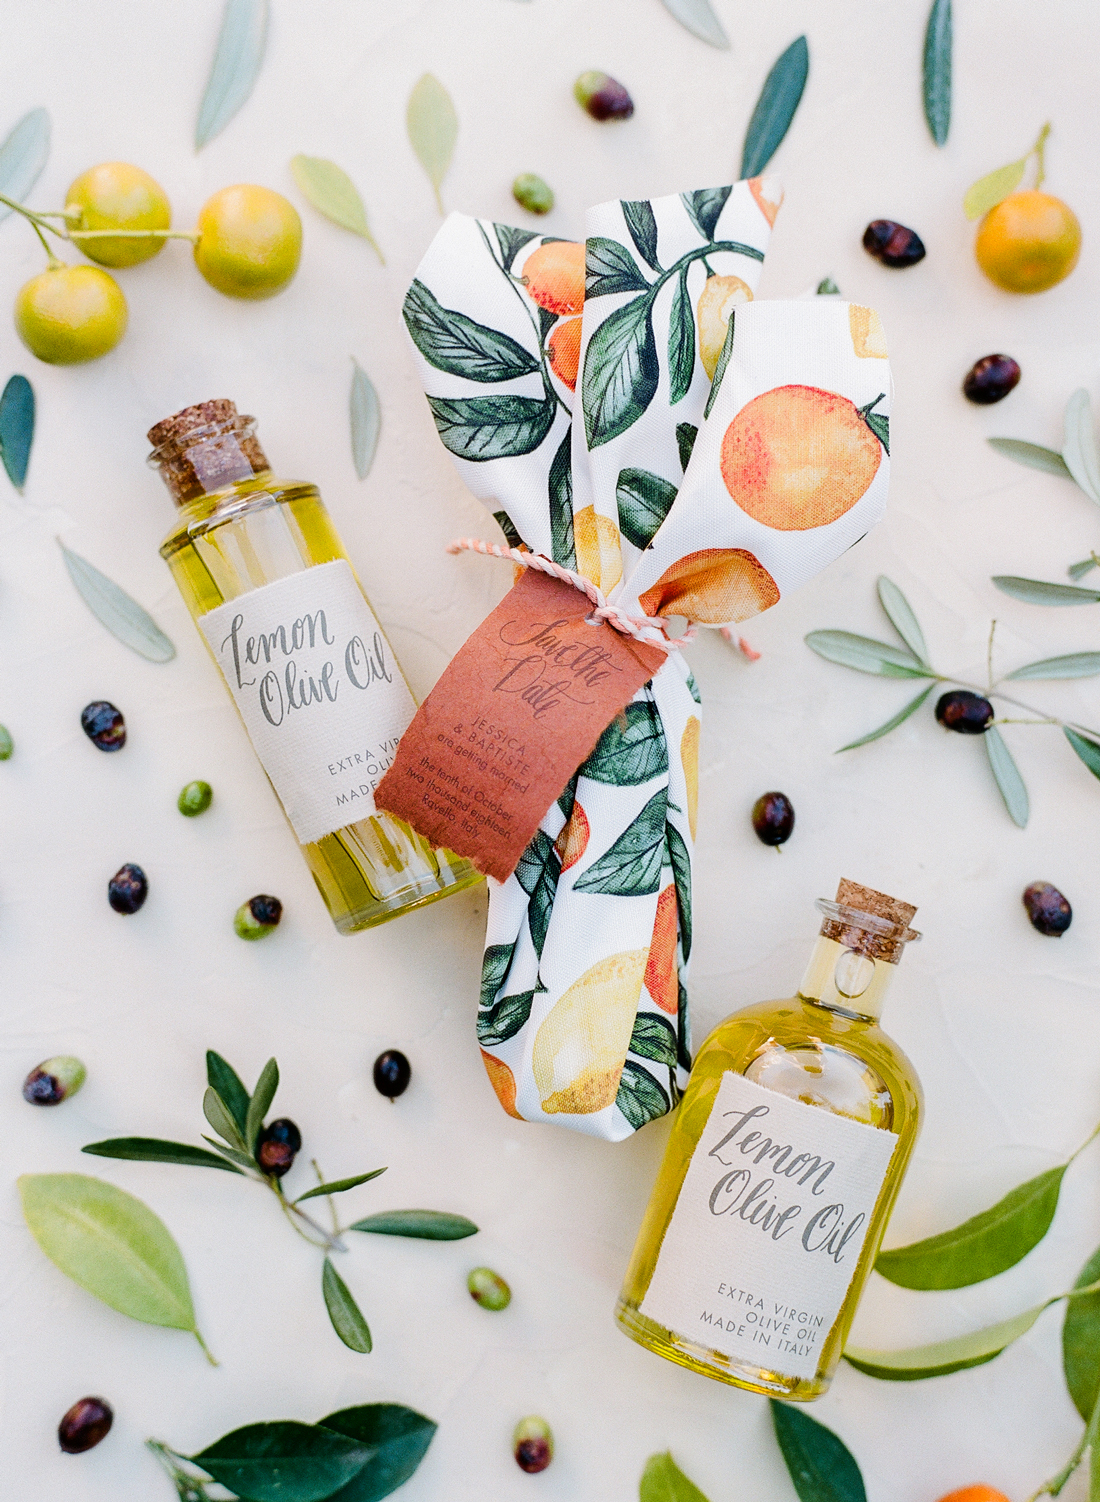 olive oil save the dates wrapped in custom citrus design linens